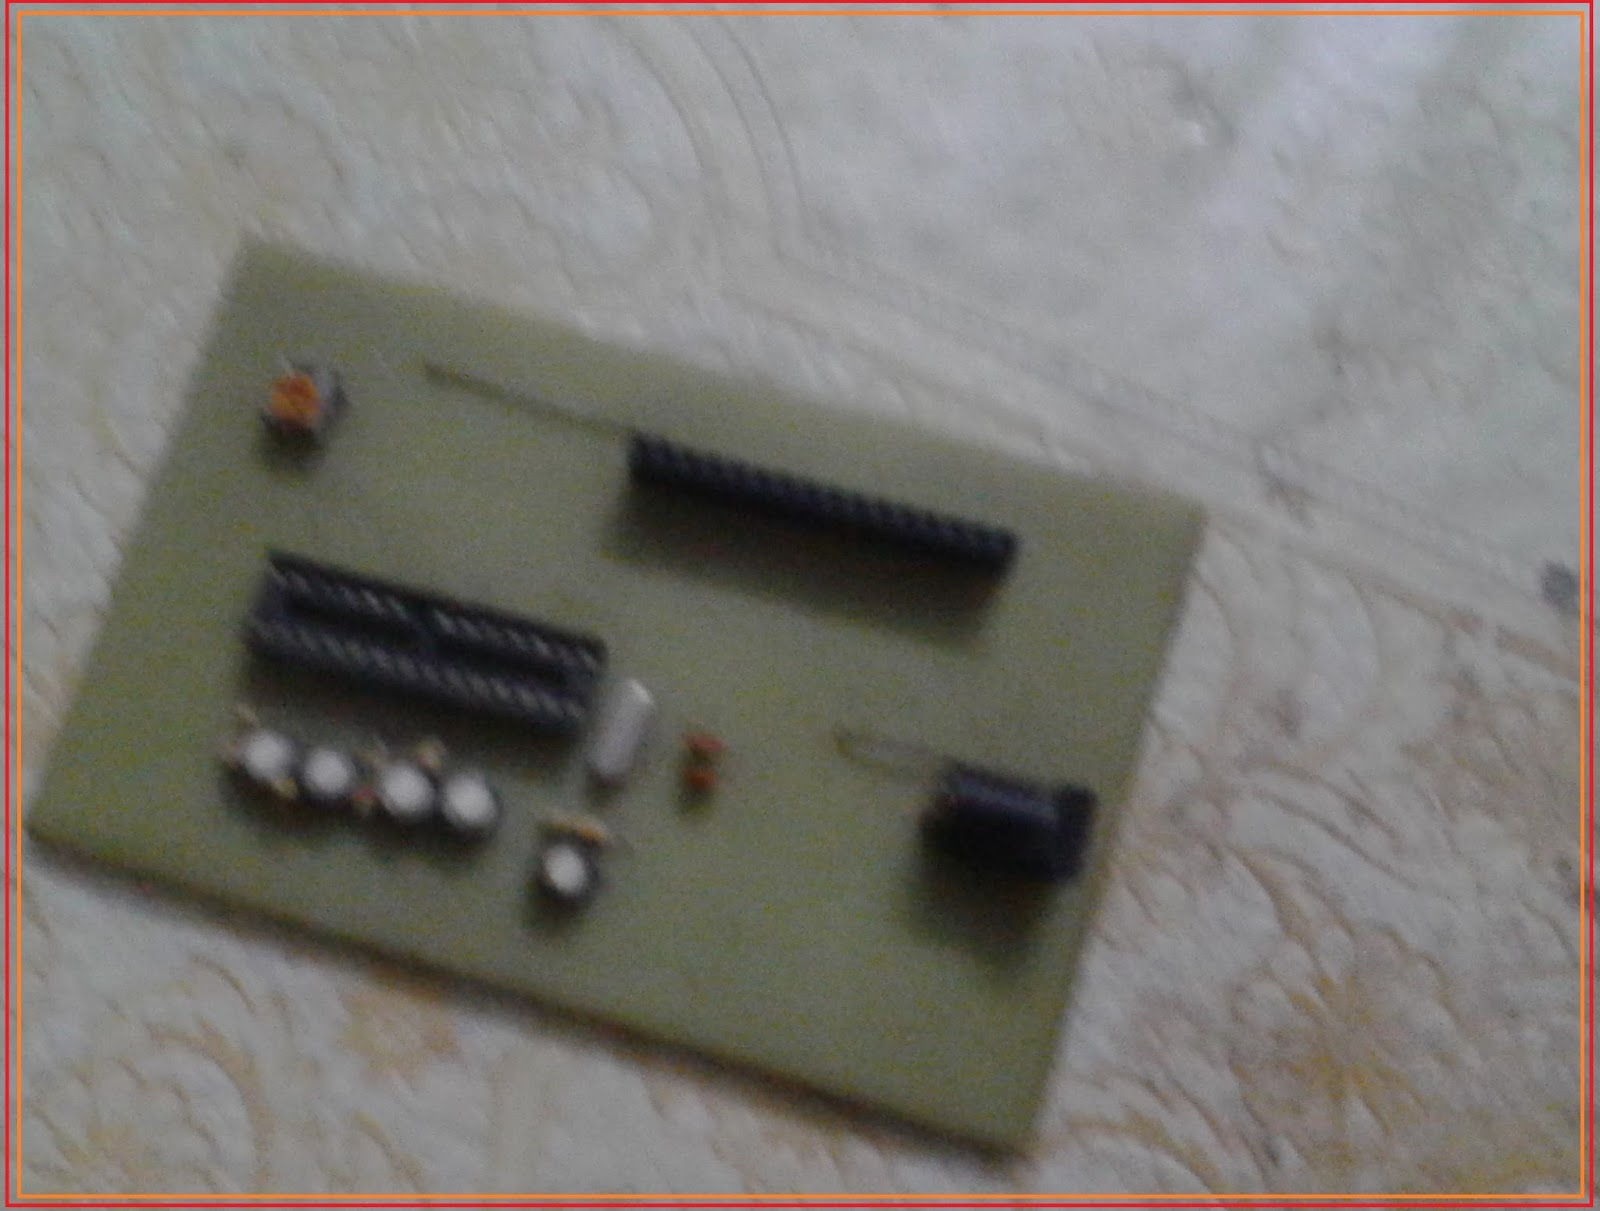 How To Make Pcb Printed Circuit Board At Home Step By Making Boards